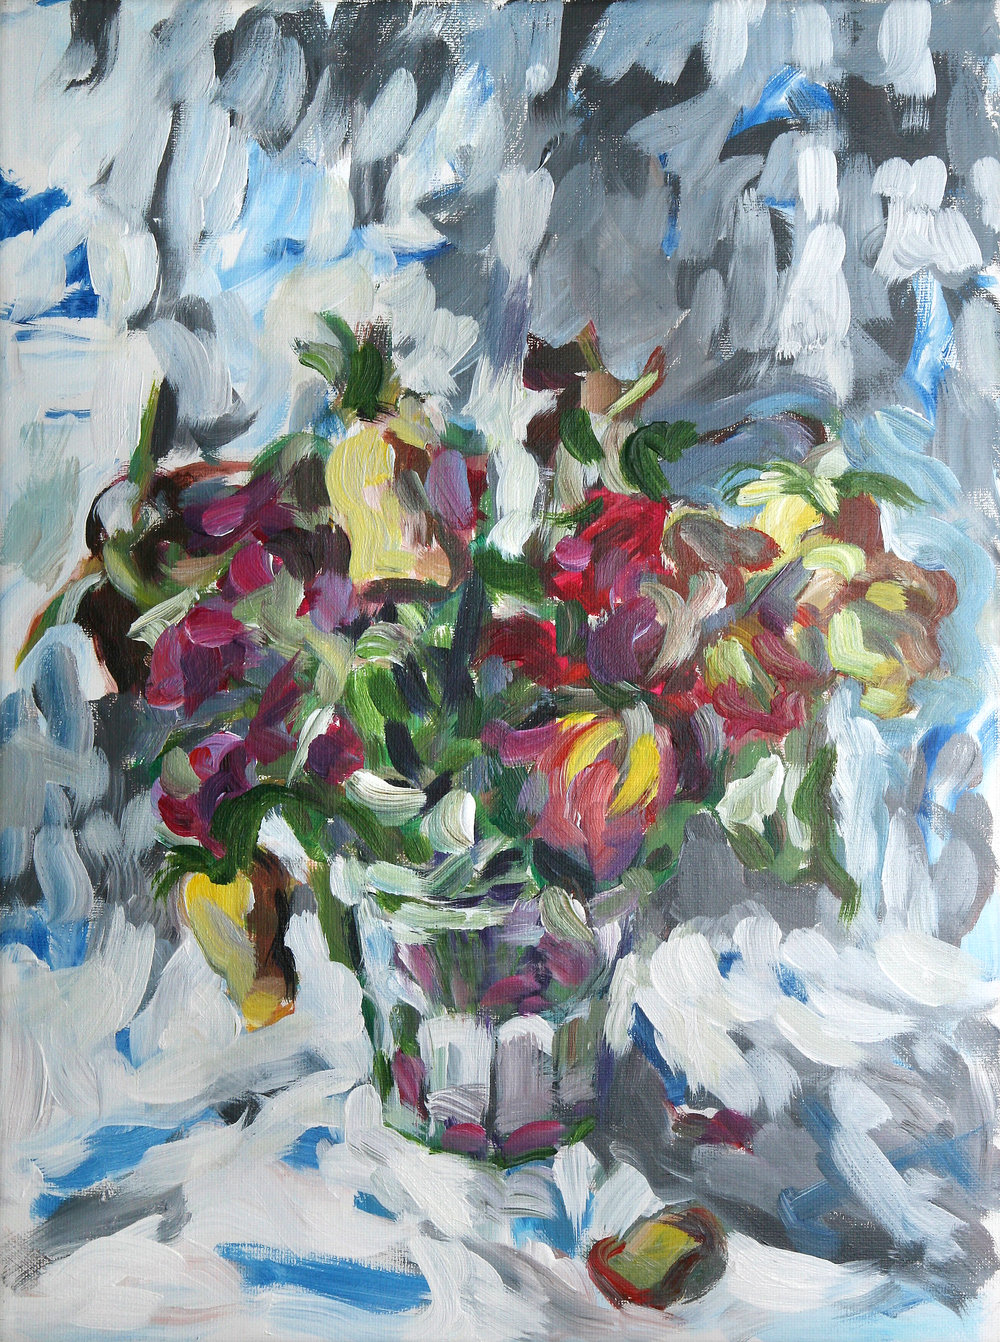 Dead Flowers   acrylic on canvas  40 by 30 by 1.75 cm  unframed  £650